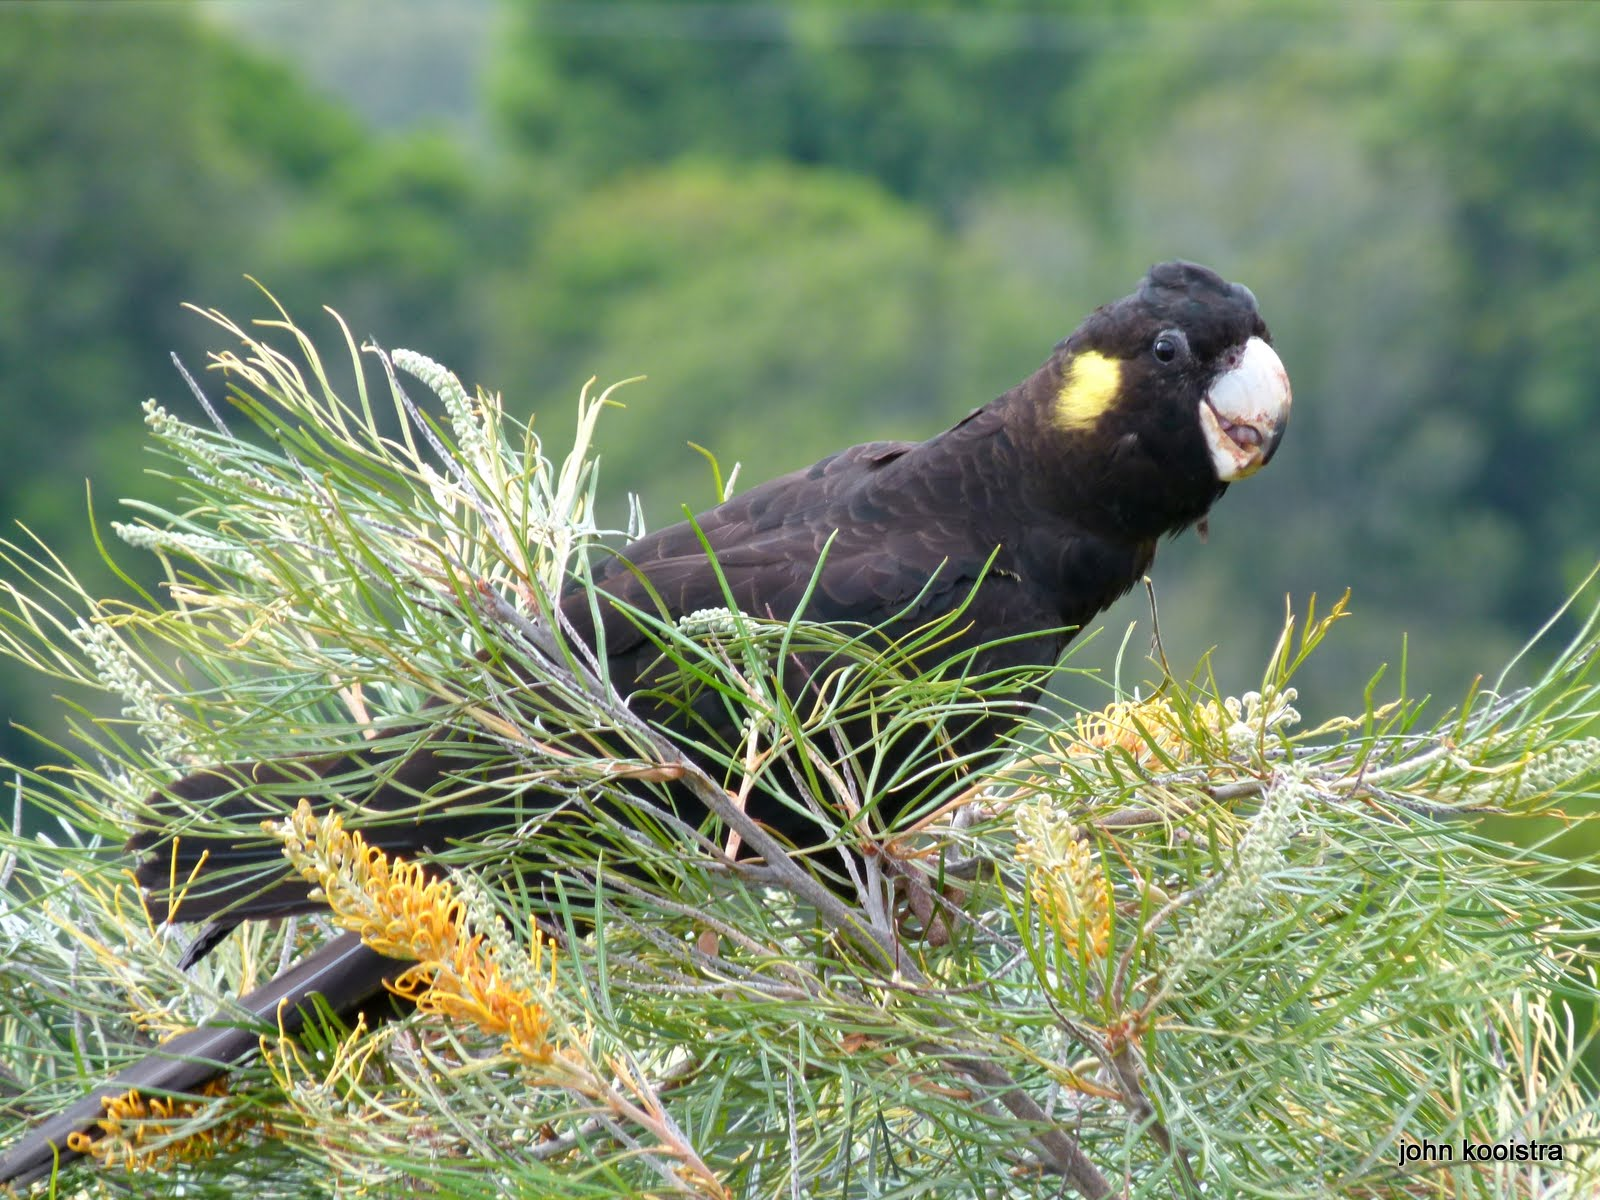 yellow-tailed-black-cockatoo-03.JPG